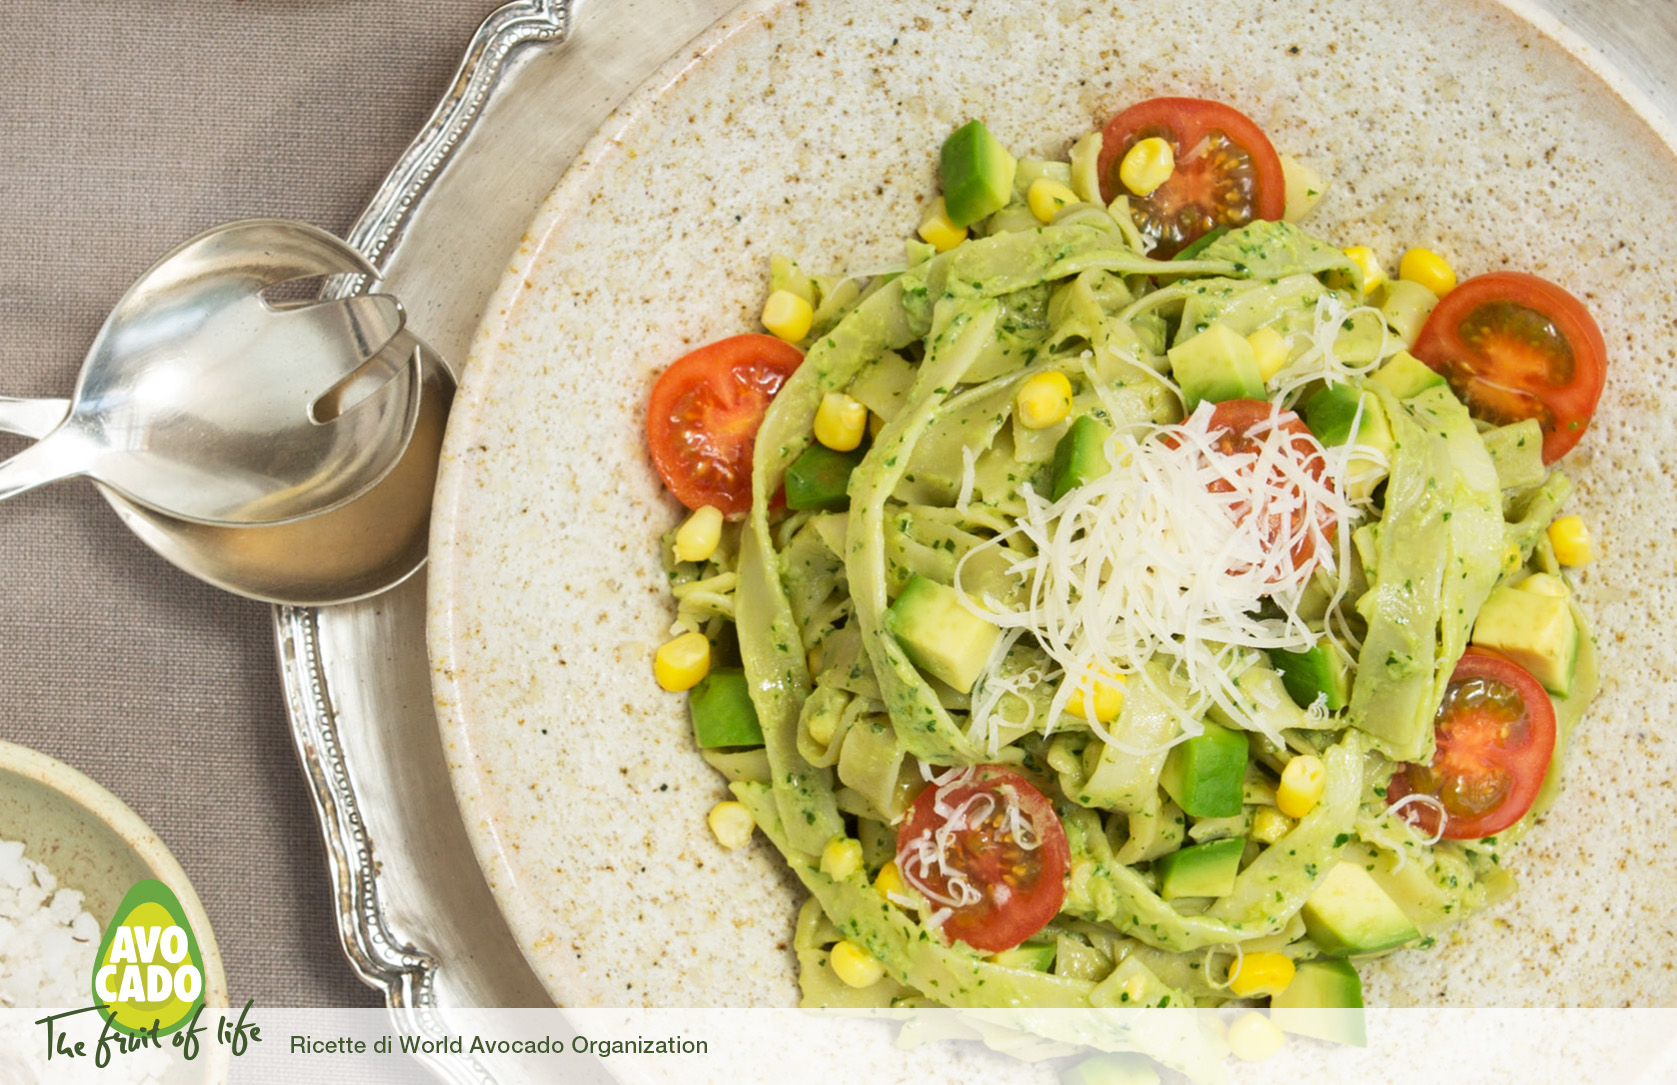 Tagliatelle con salsa all'avocado